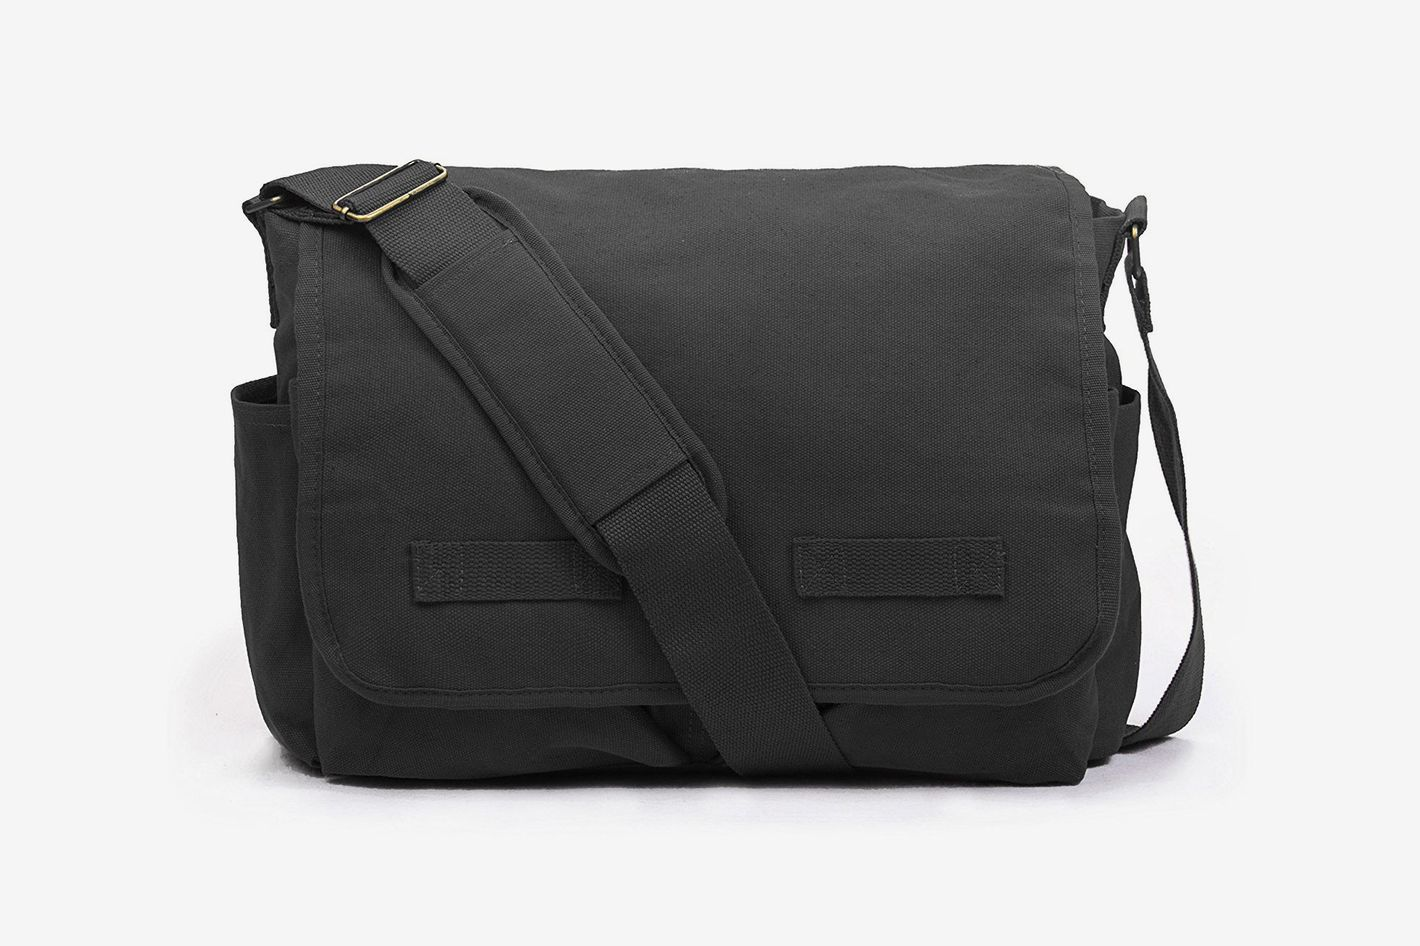 246c3e6cc2d 11 Best Messenger Bags for Men 2018